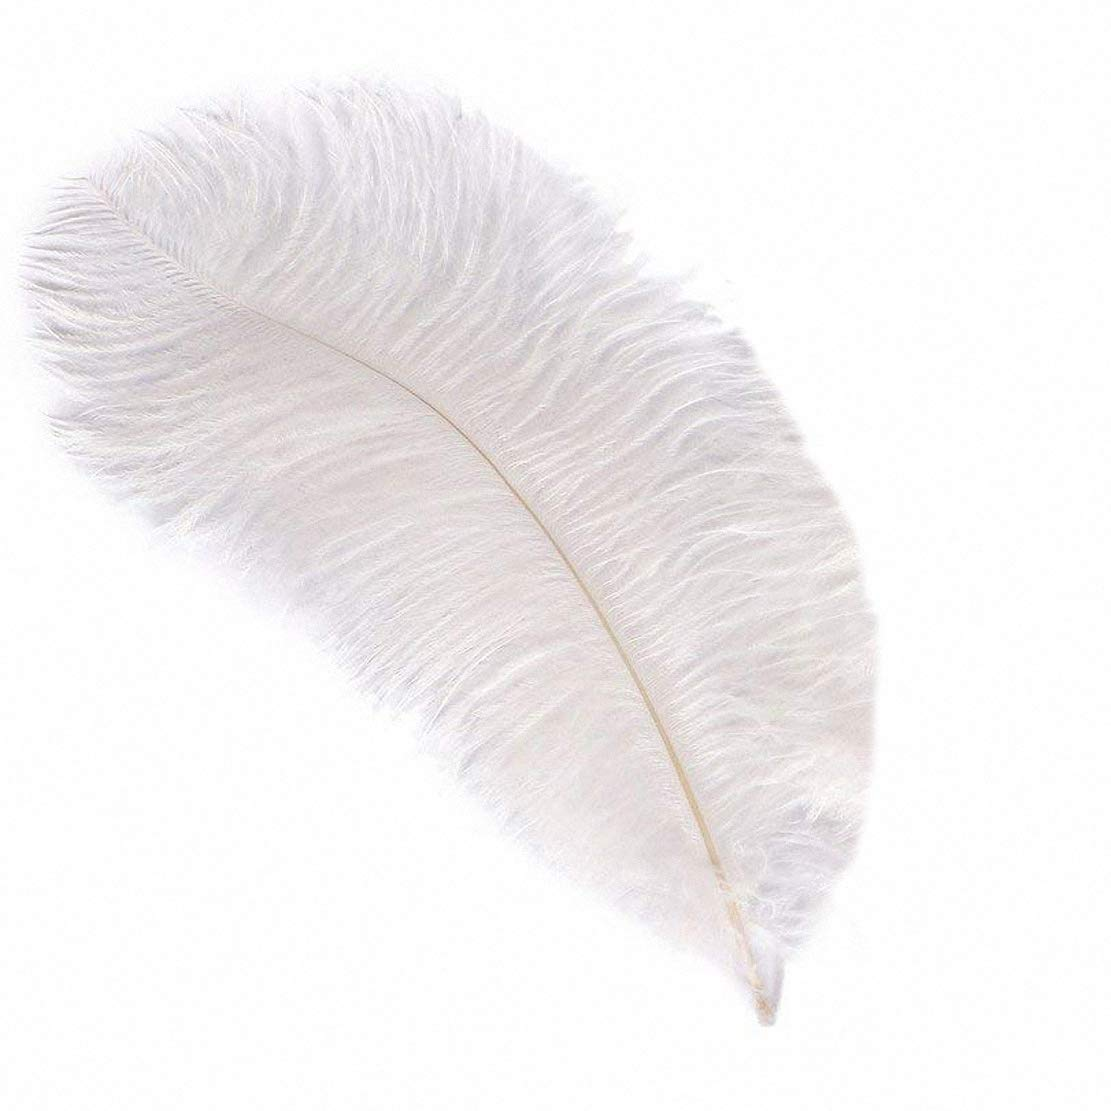 100pcs Natural Ostrich Feathers Plume Wedding Centerpieces Home Wall Decoration (White, 16-18inch (40-45cm))